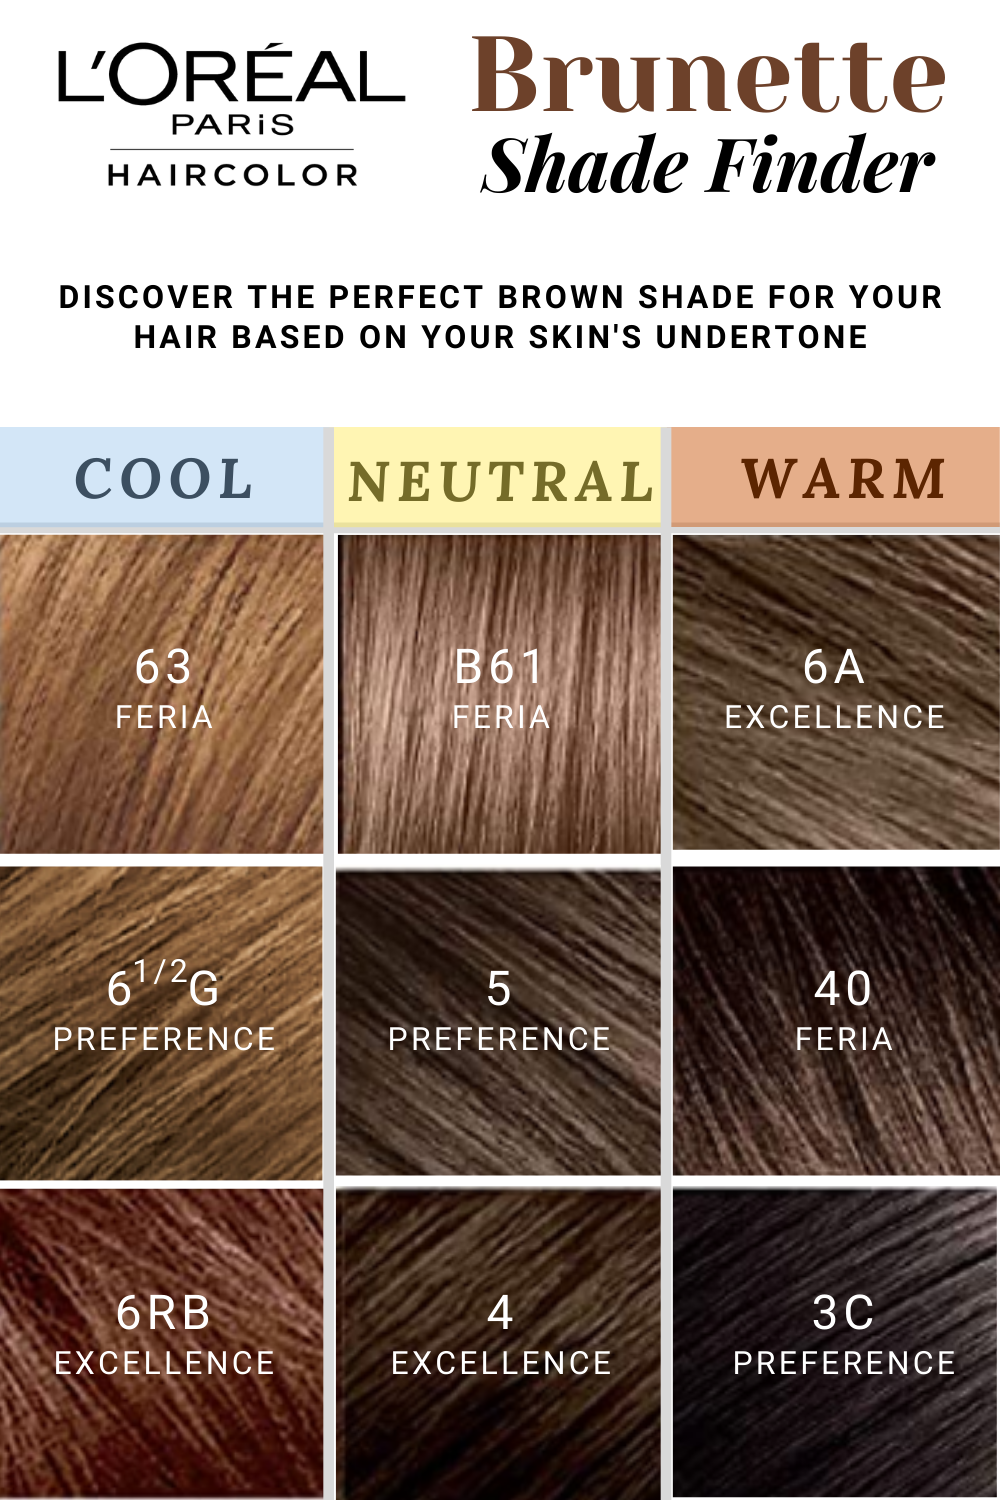 How To Choose The Best Hair Color For You In 2020 Brown Hair Color Shades Hair Color For Tan Skin Hair Color